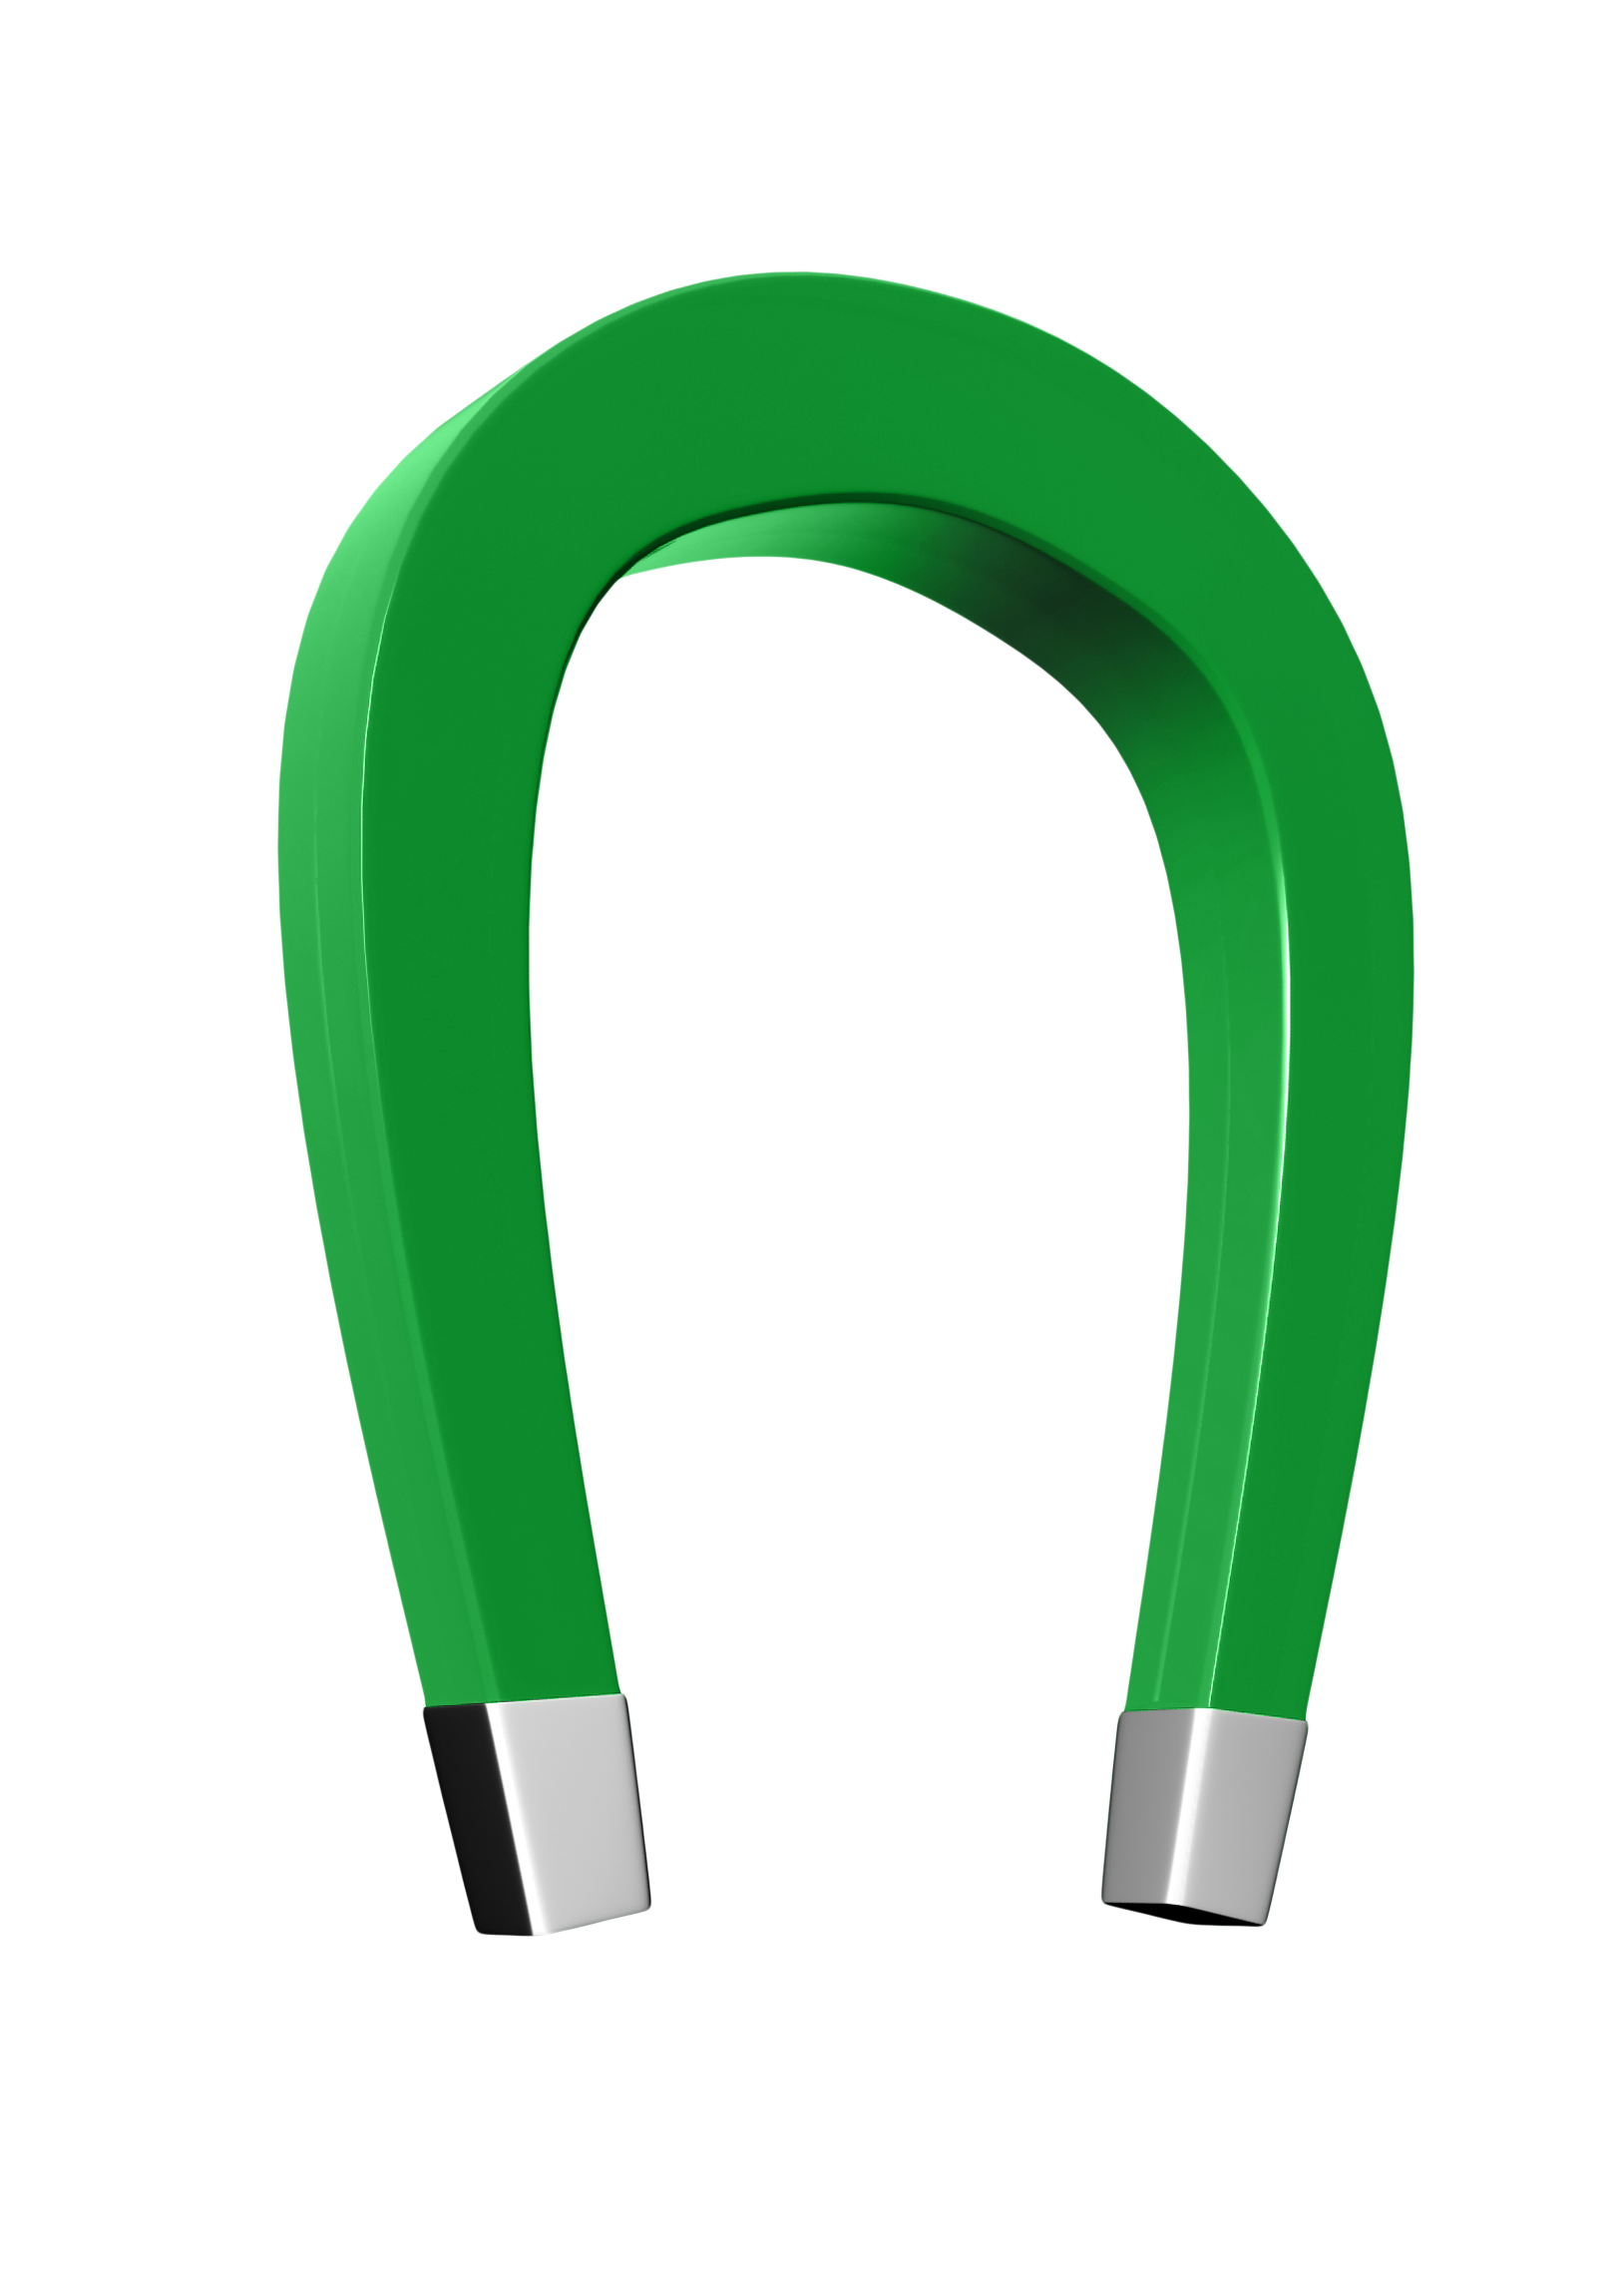 Horseshoe clipart green #6